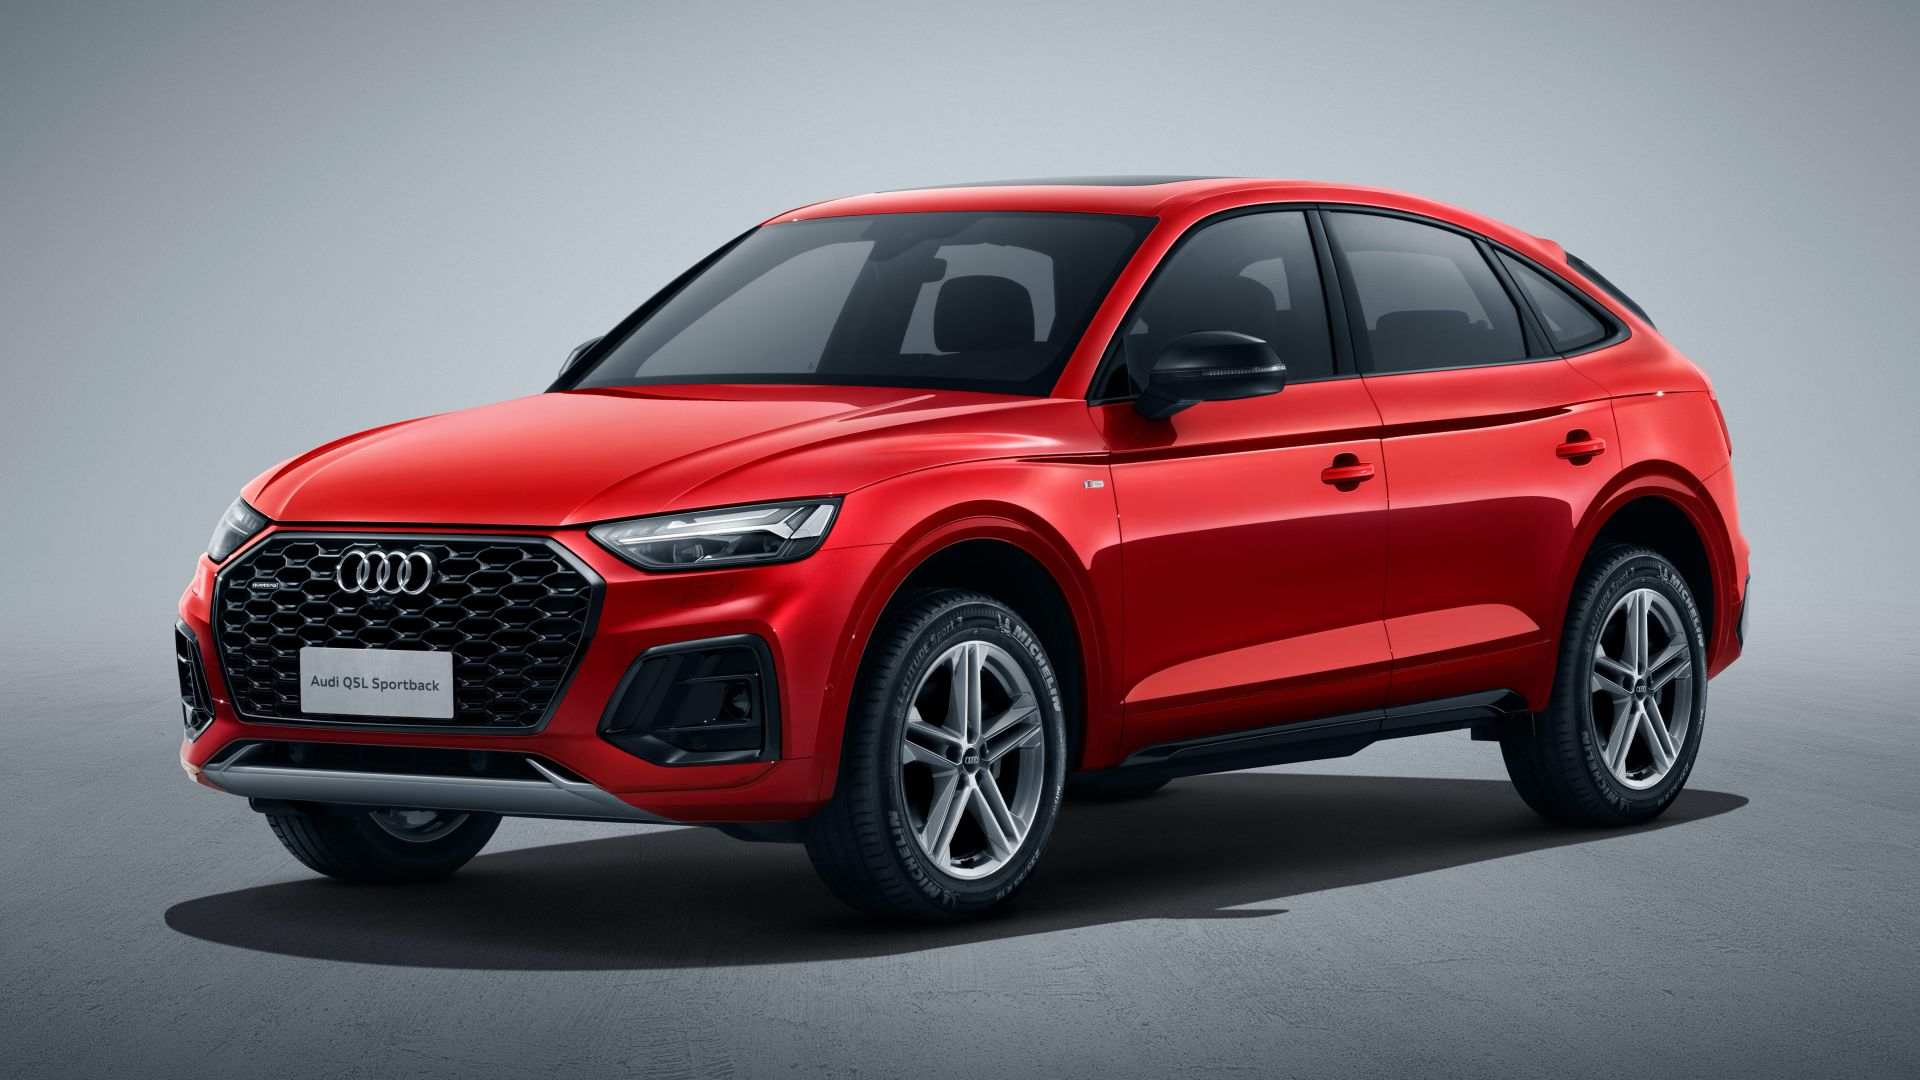 The Euro-spec Audi Q5 Sportback is heading to China after gaining 89 extra millimeters (3.5 inches) of length and wheelbase. The car will celebrate its official premiere at the Guangzhou Auto Exhibition opening for the media on November 20, 2020.